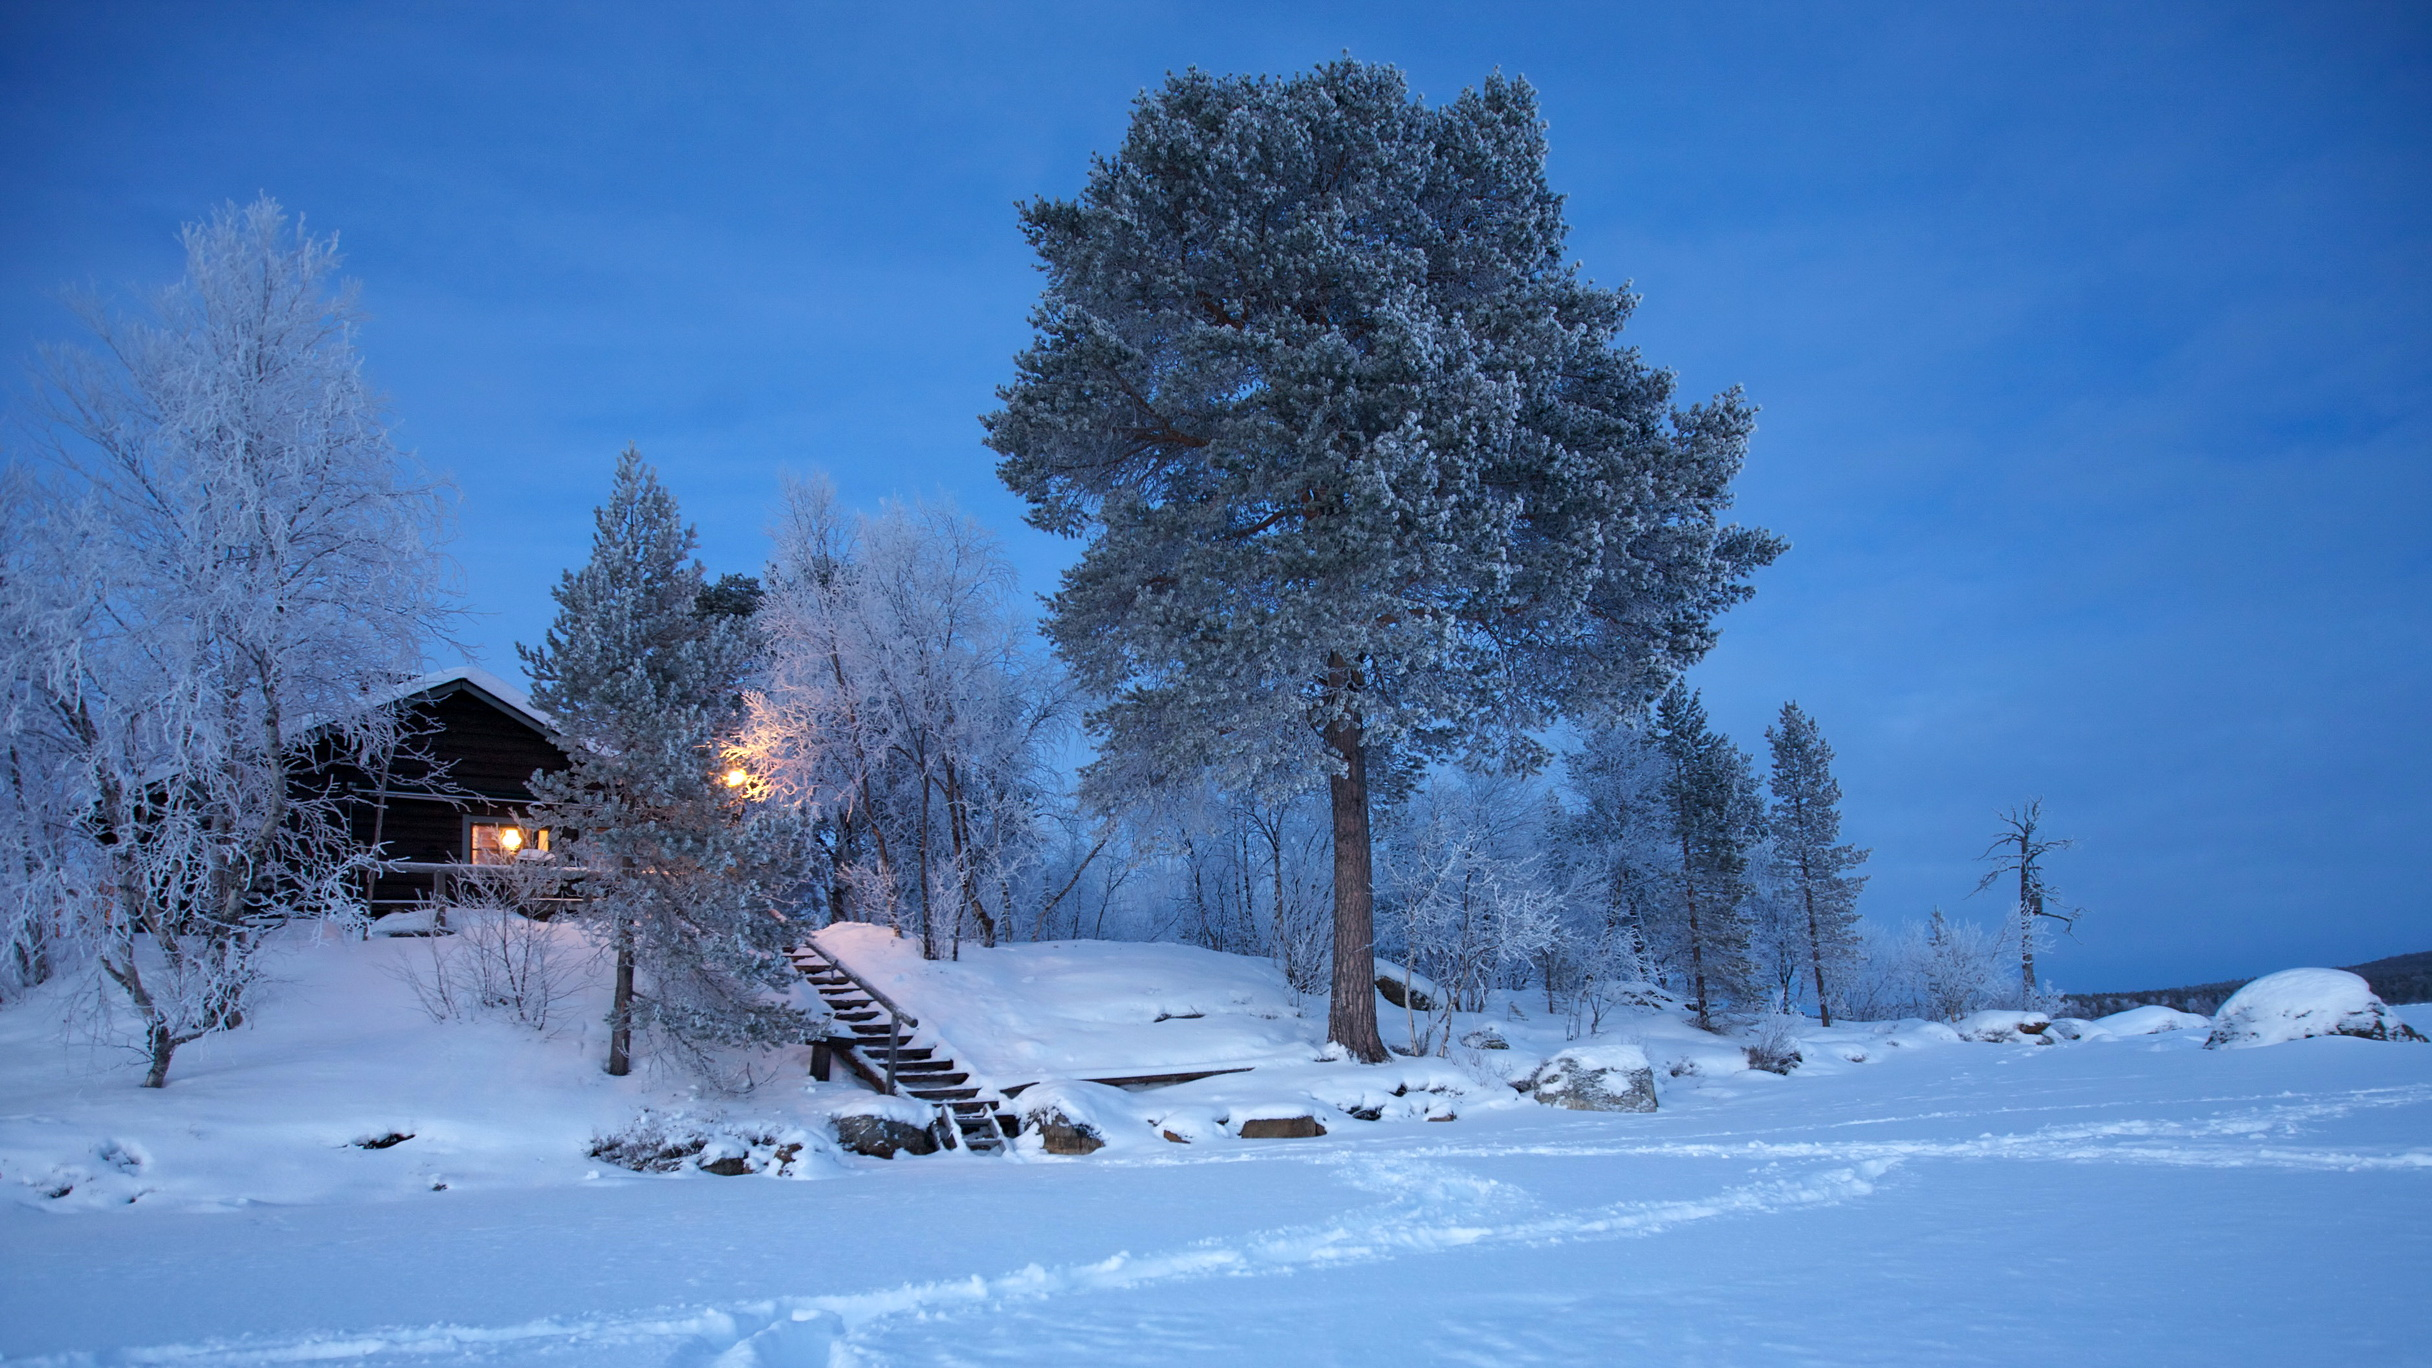 Photos of lapland in finland Valkea - Official Site